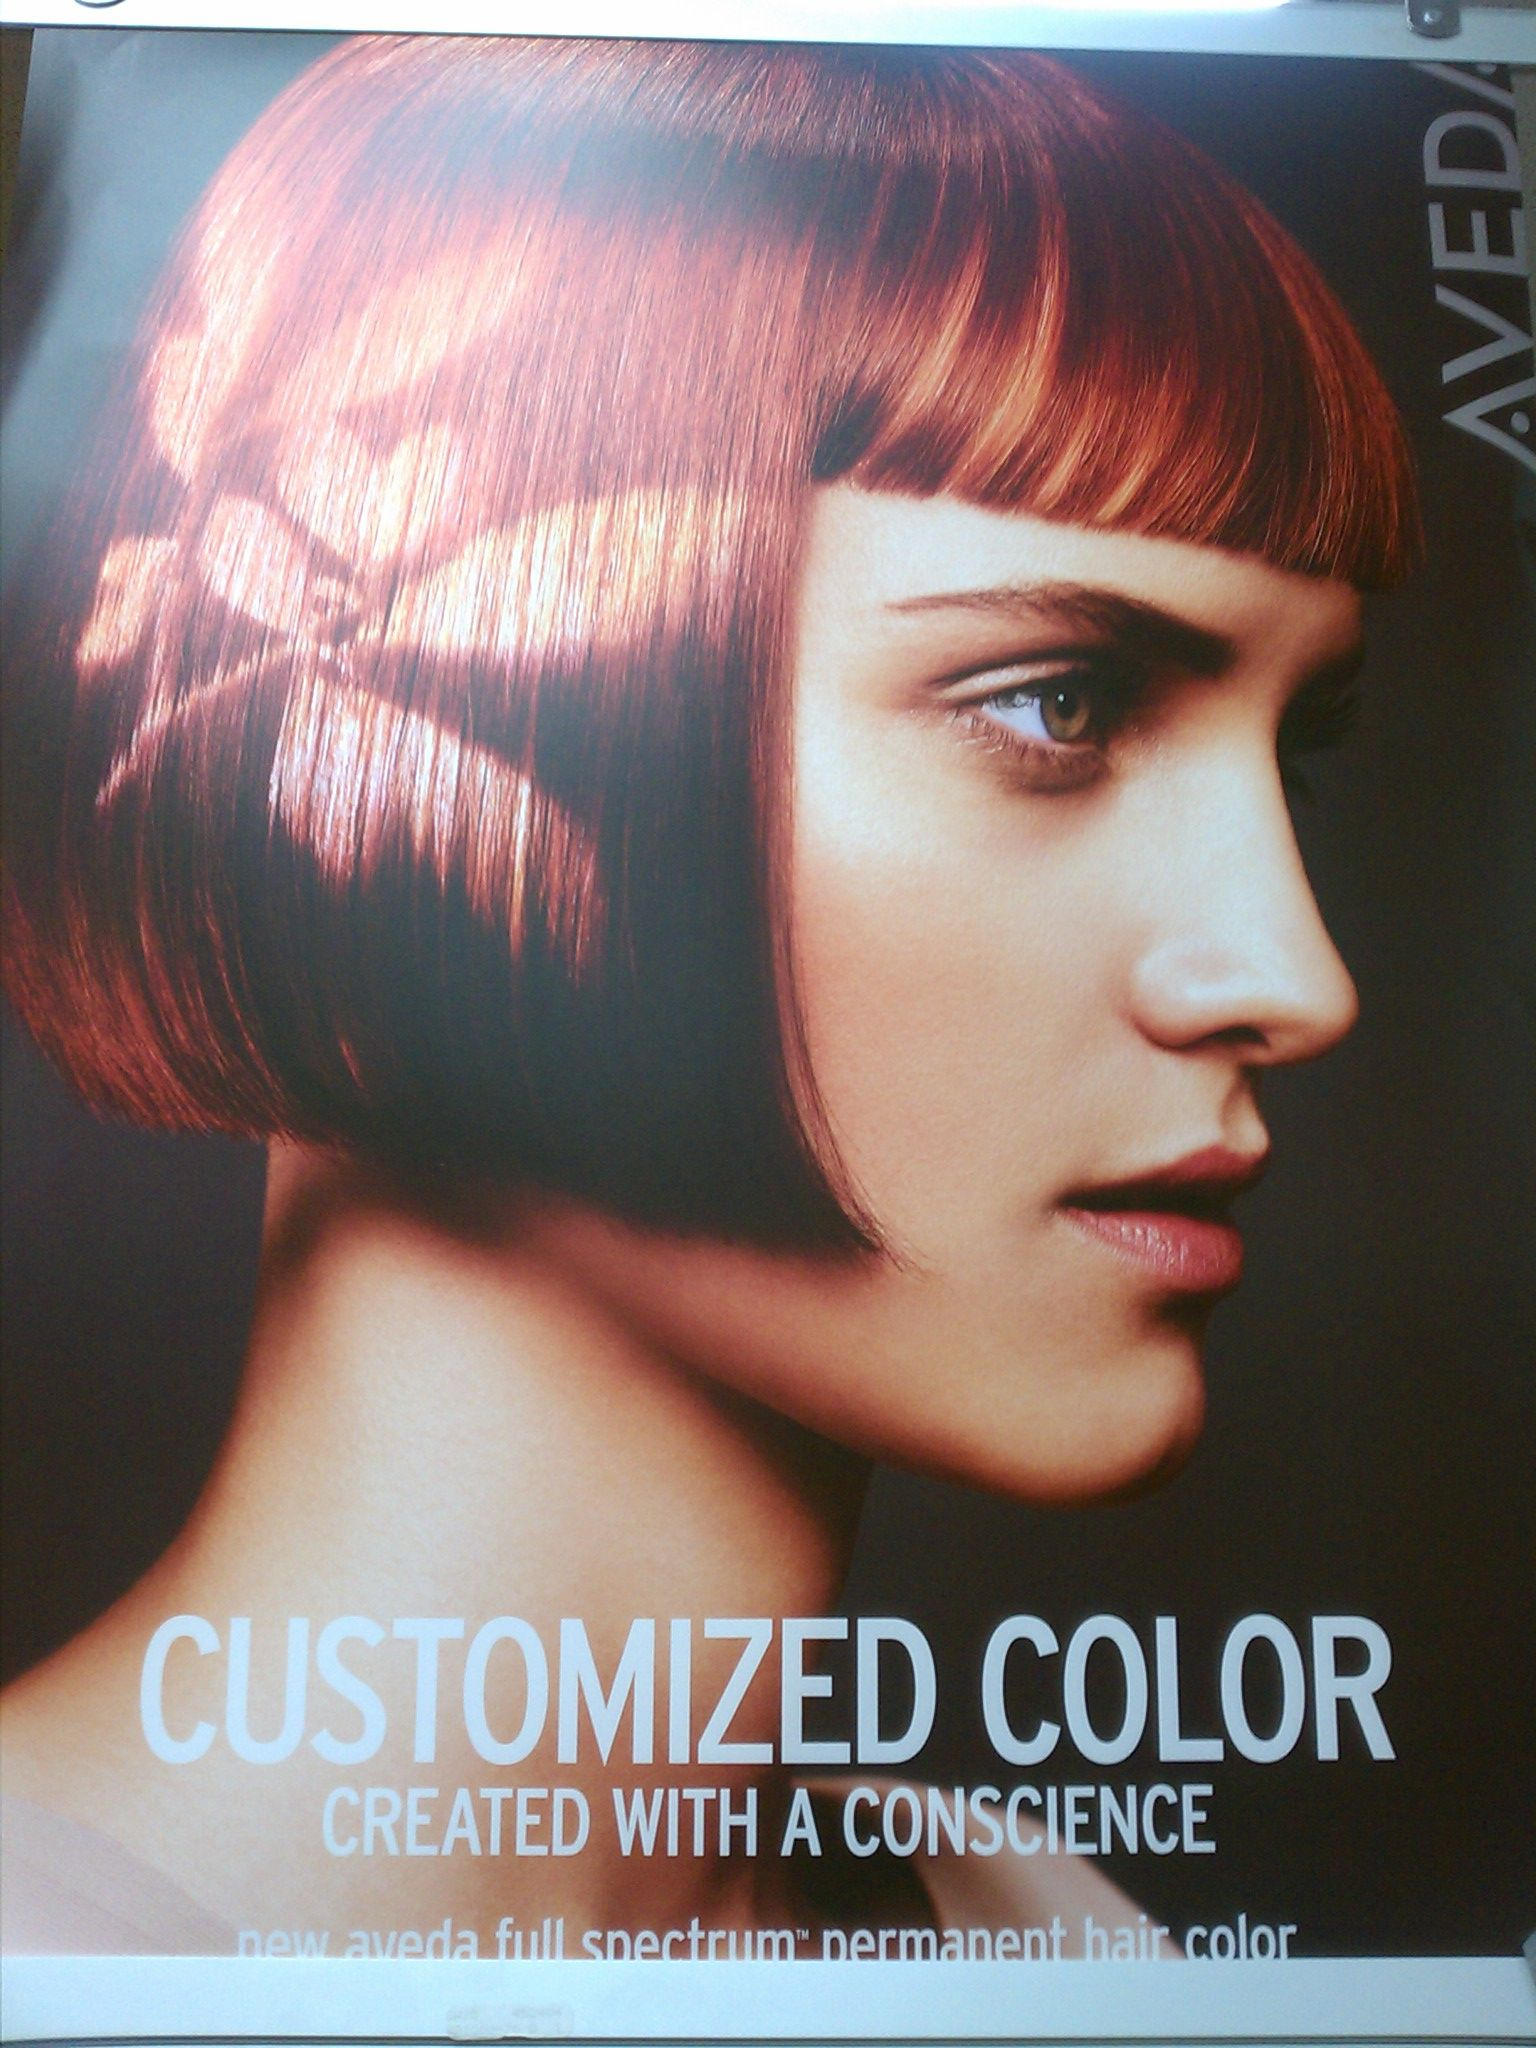 Beautiful customized color created with a conscience inspiration